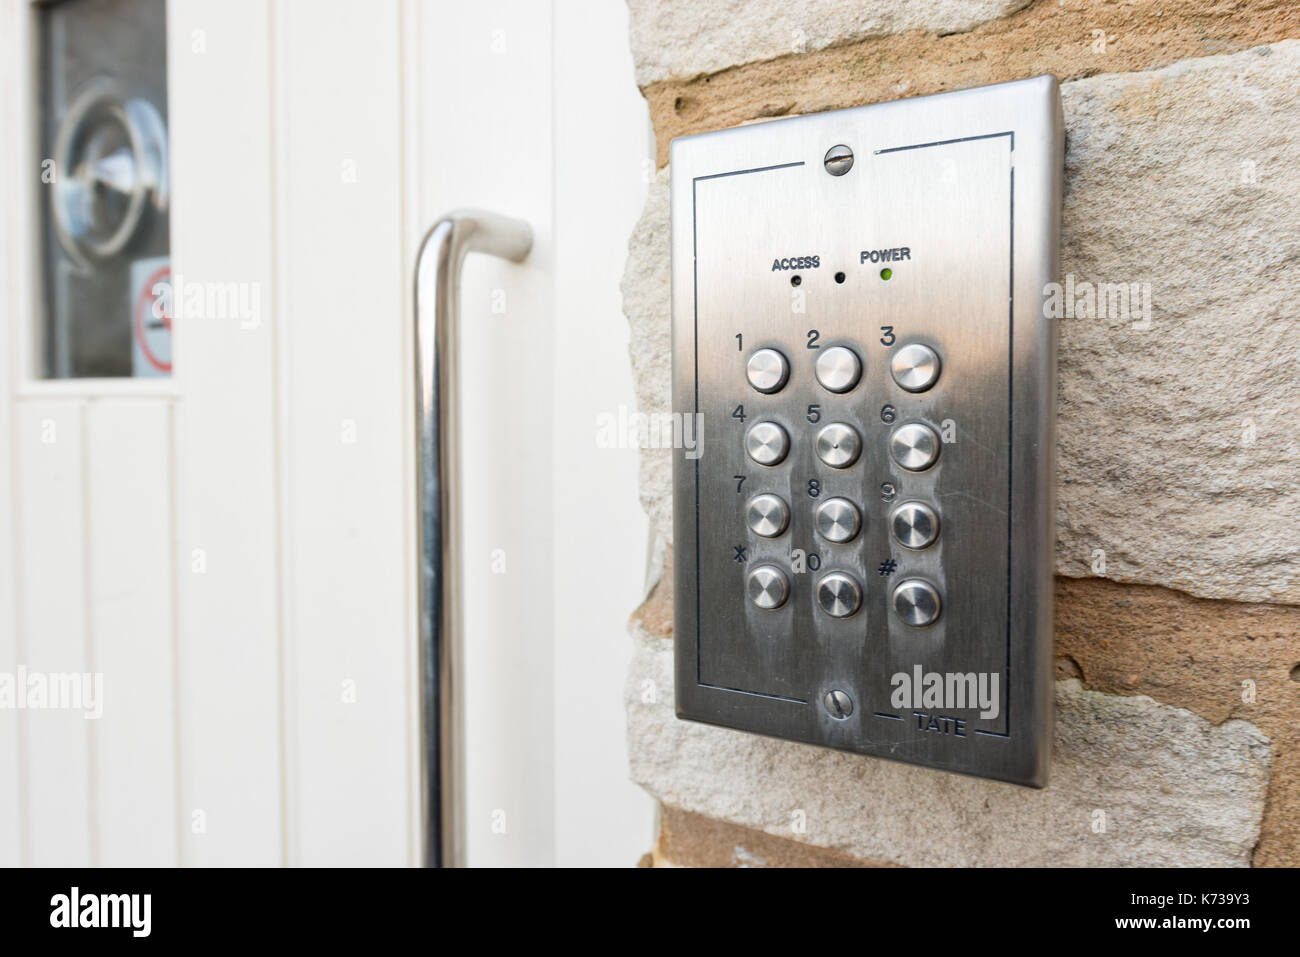 The Keypad Of A Door Entry Security System At A Residential Home In